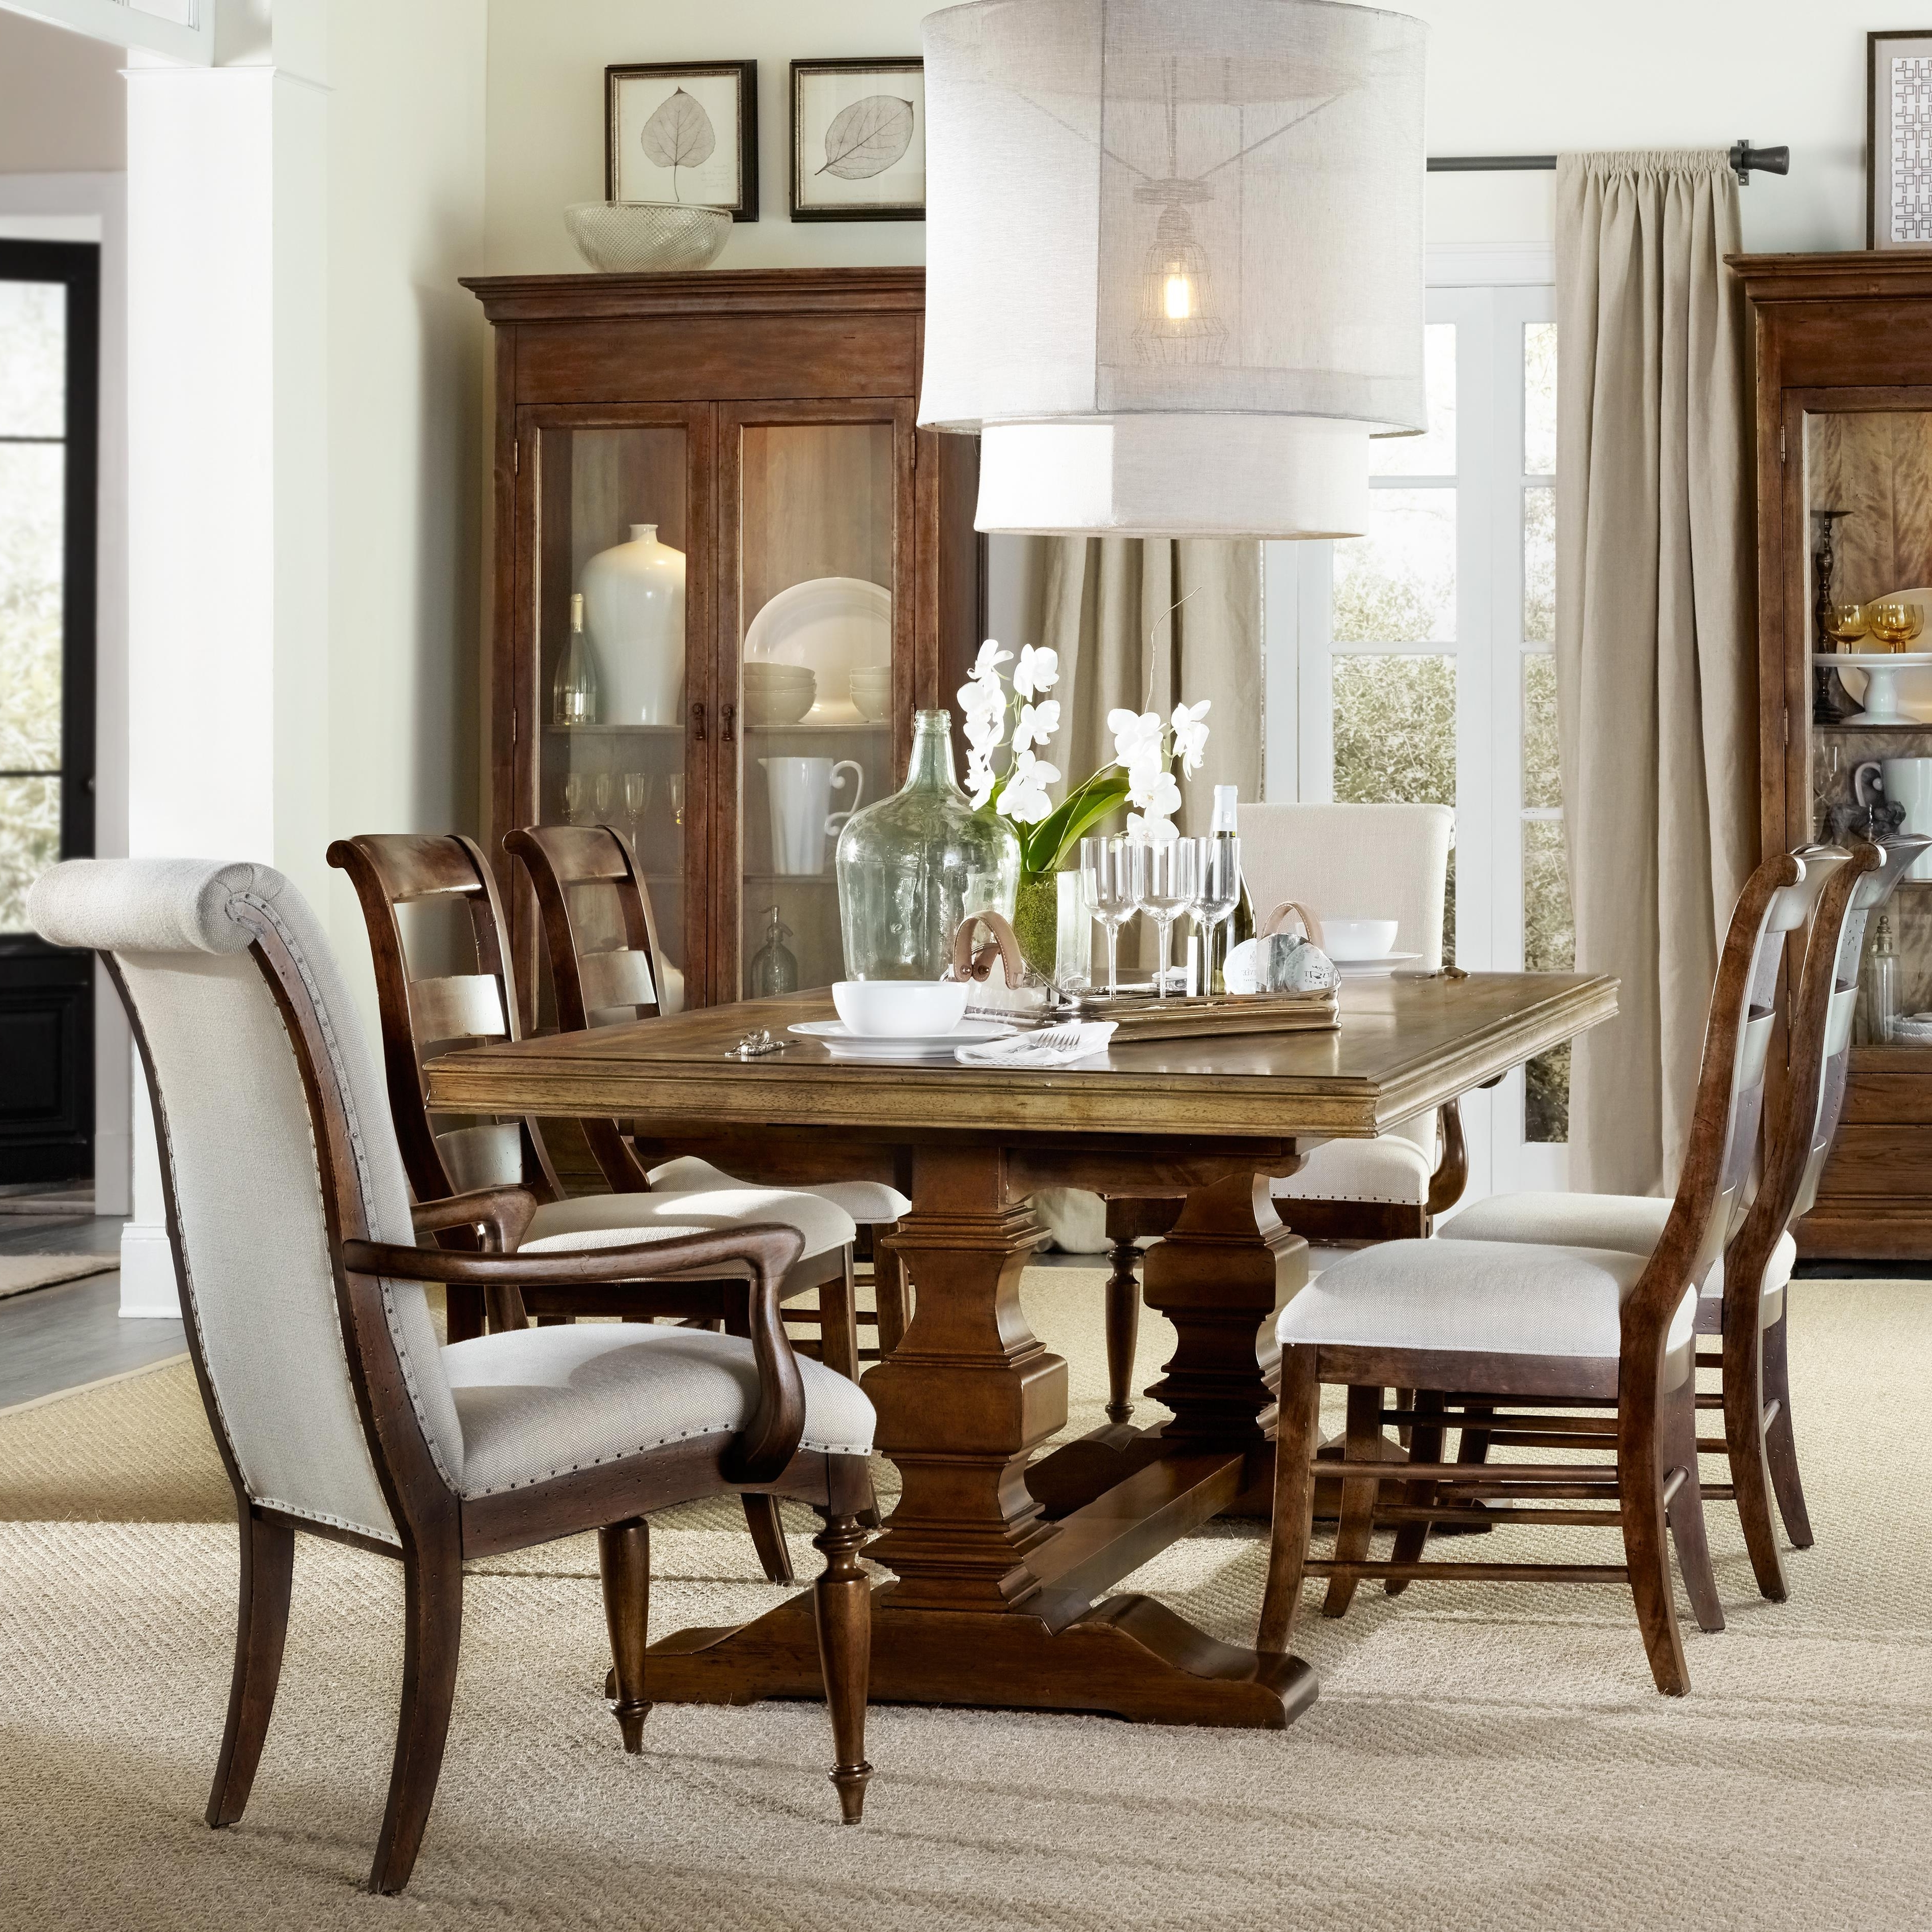 Well Liked Dining Sets Within Hooker Furniture Archivist 7 Piece Dining Set With Trestle Table (View 5 of 25)